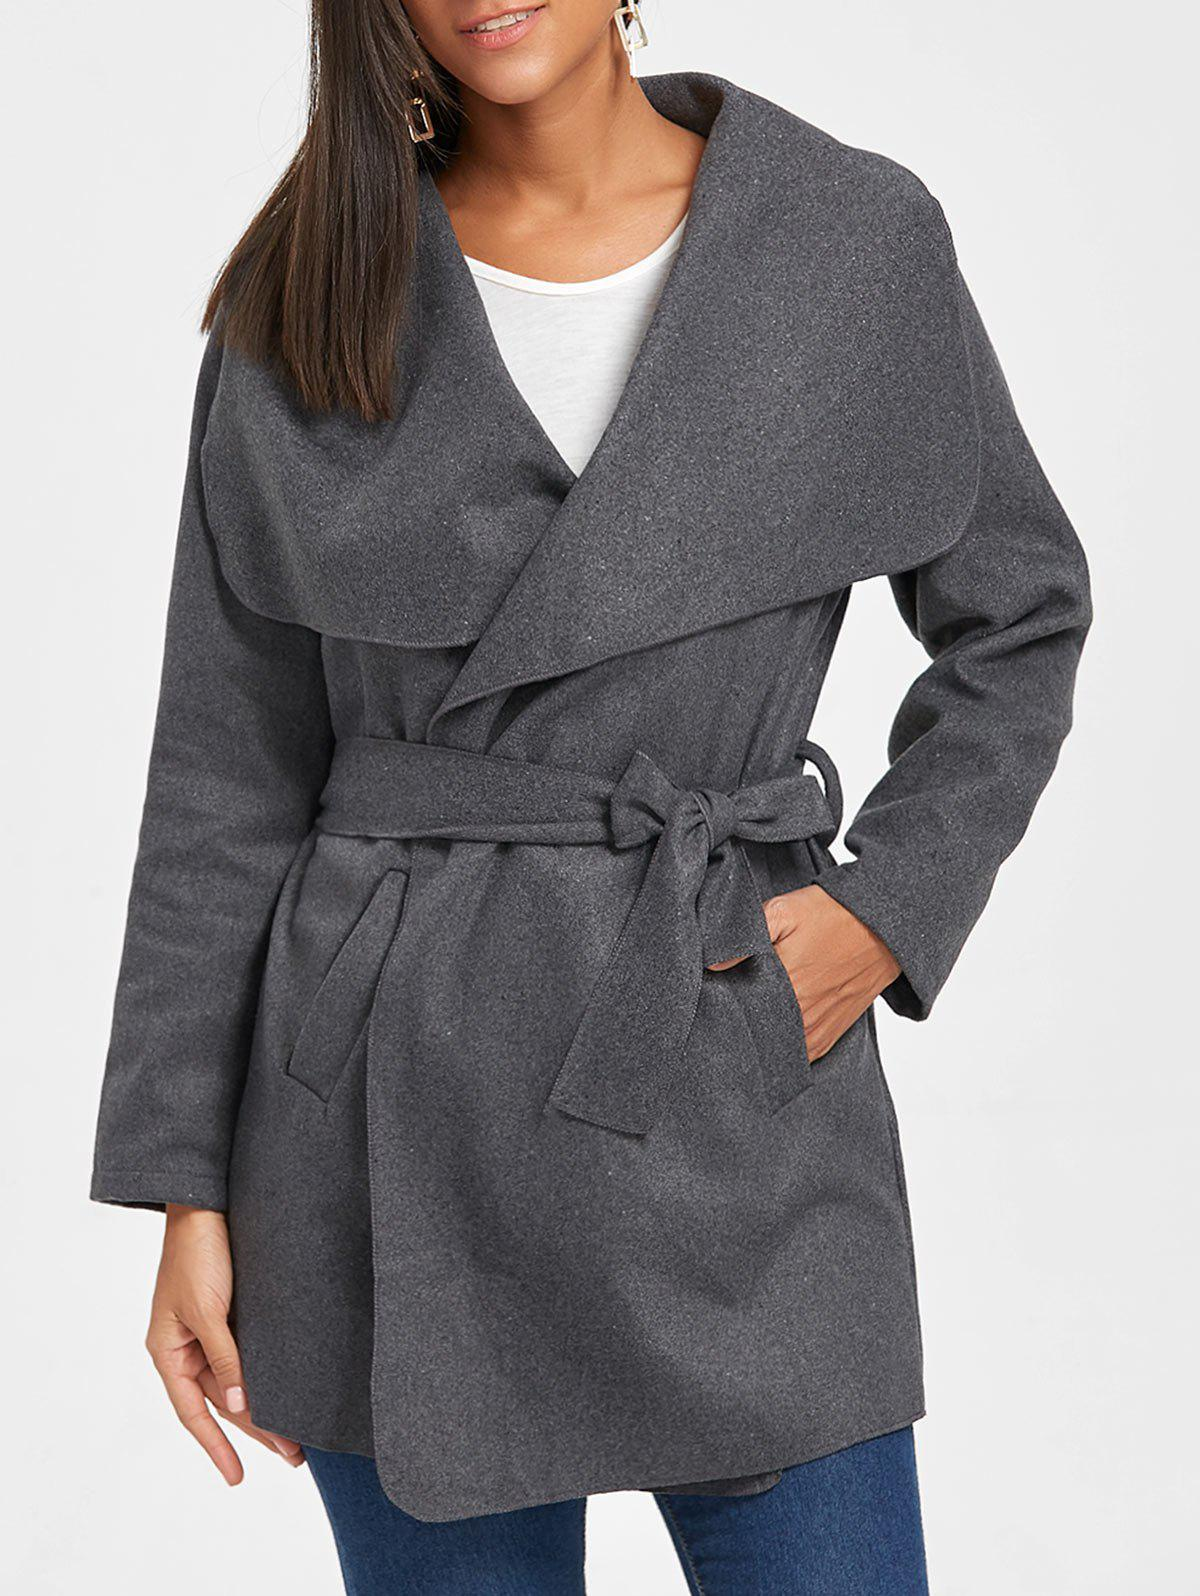 Tunic Draped Wool Coat - DARK GRAY S